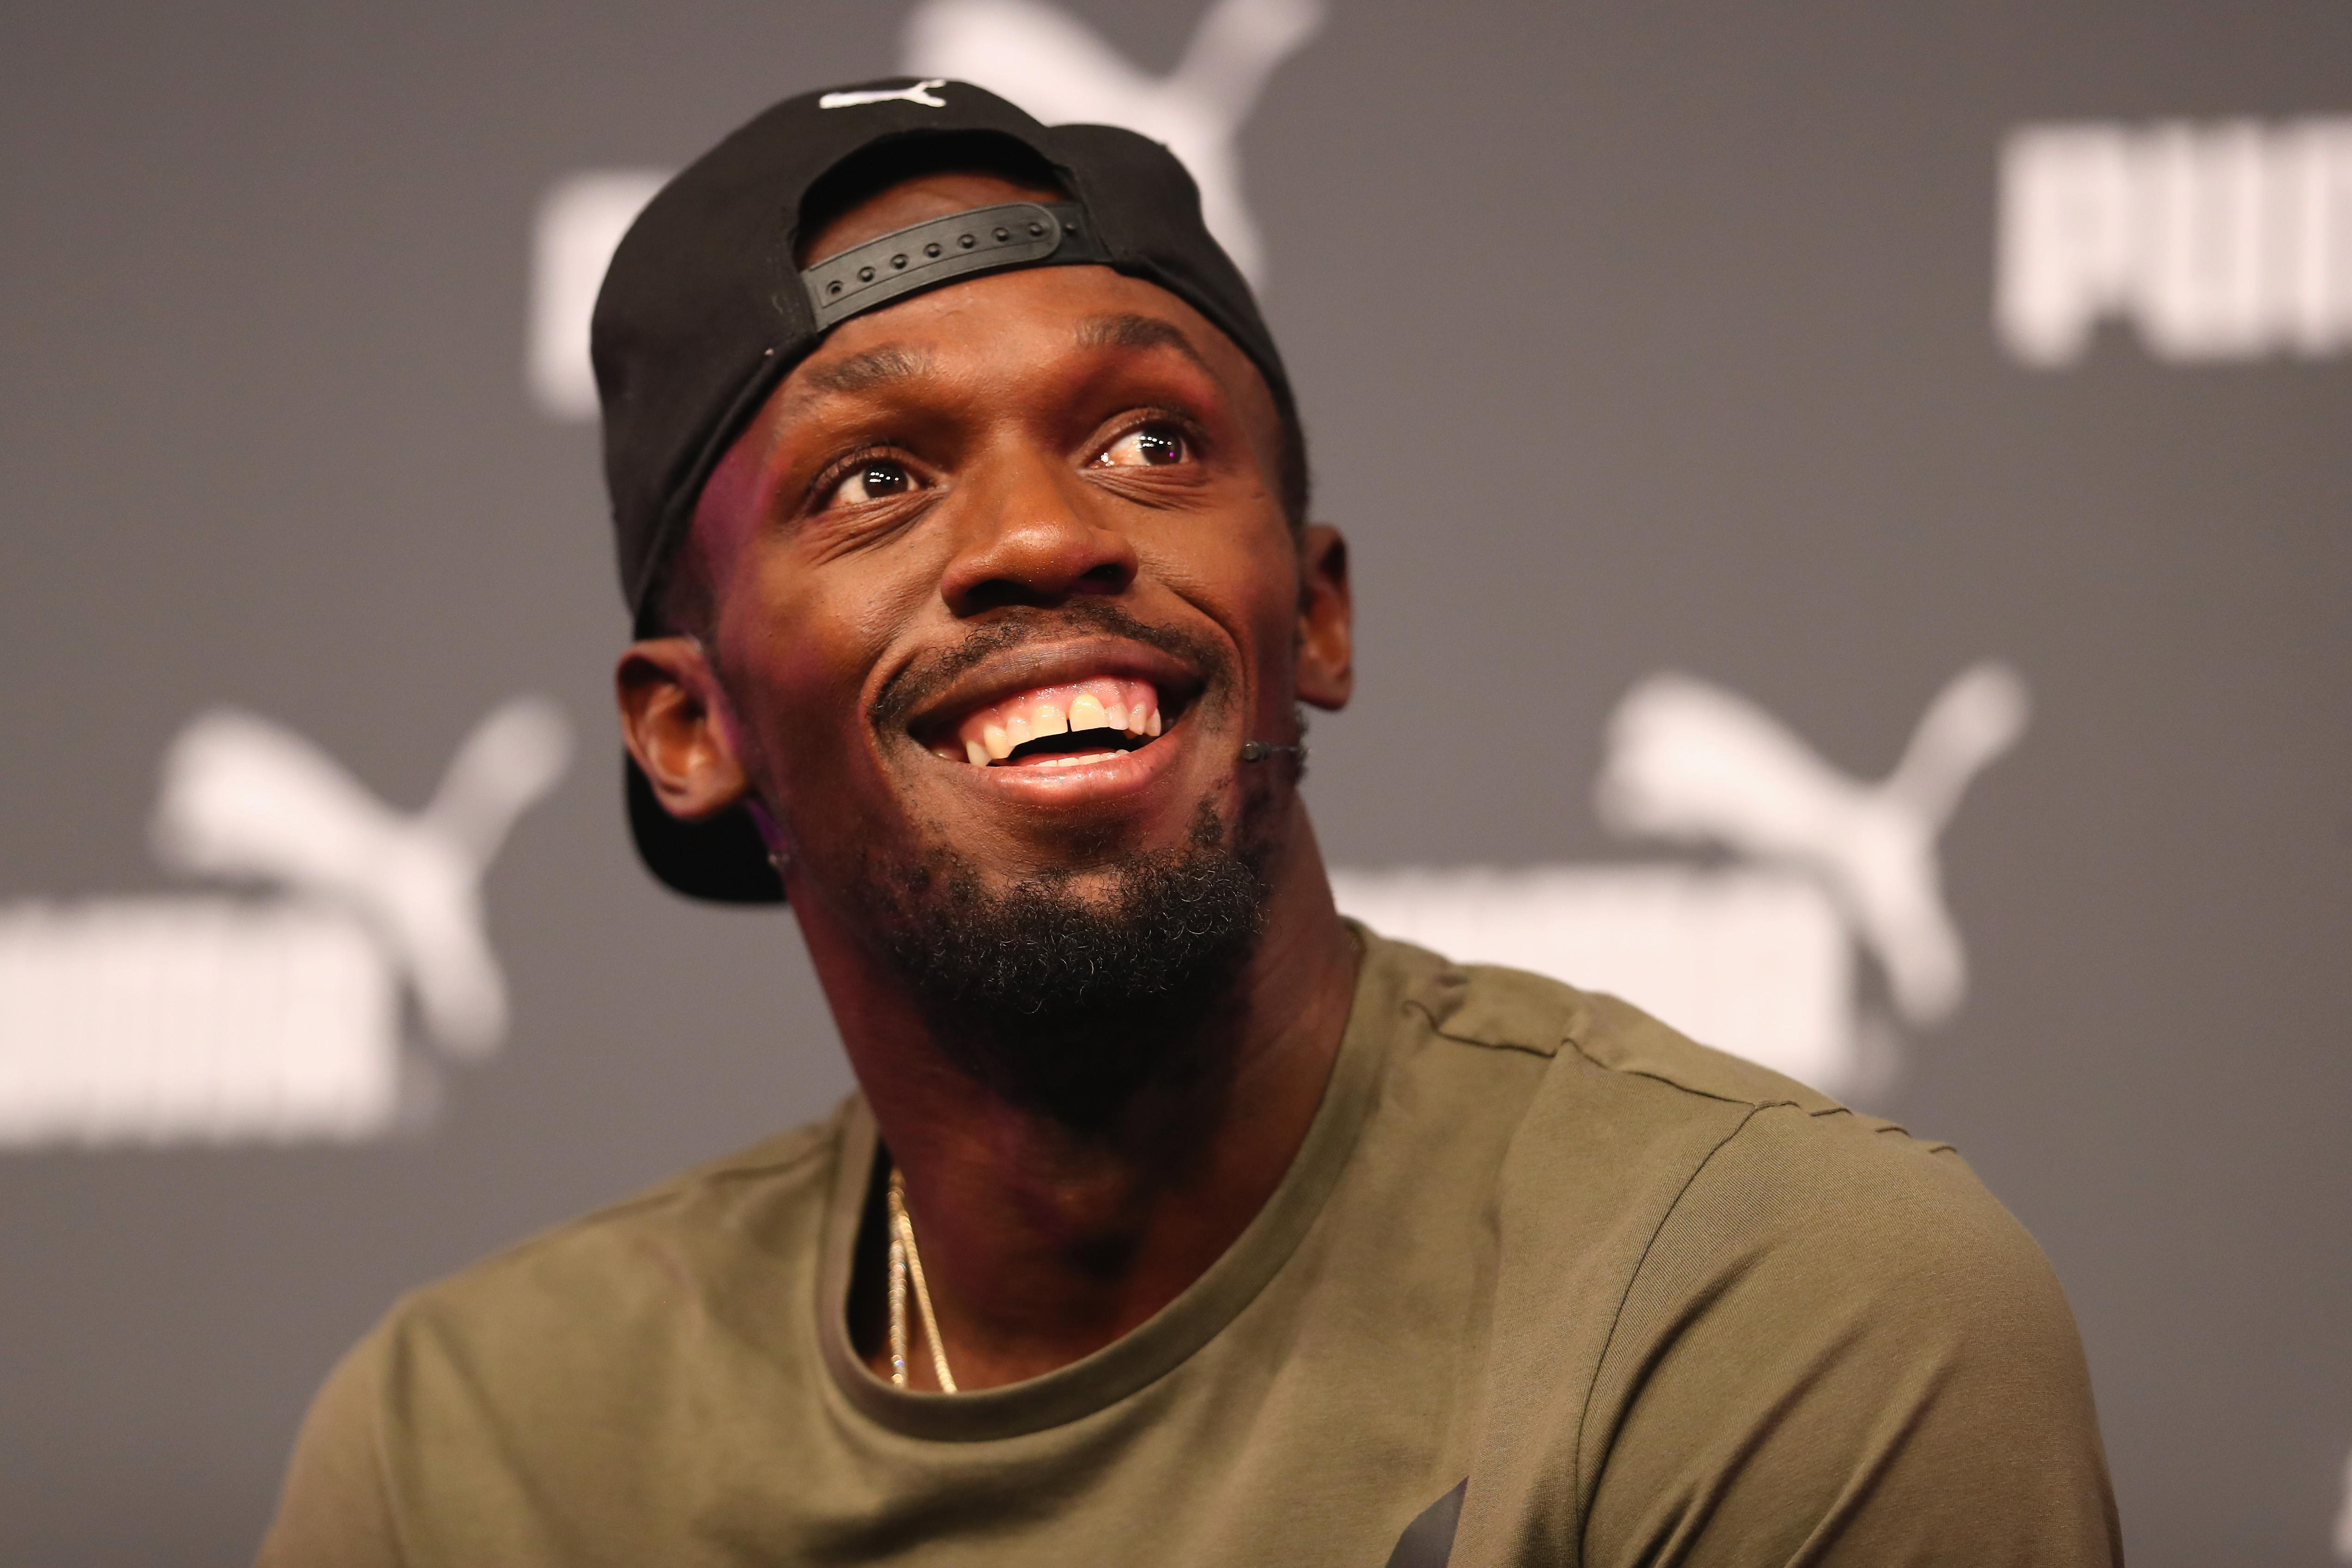 Usain Bolt Refuses to Slow Down as He Nears Career Finishing